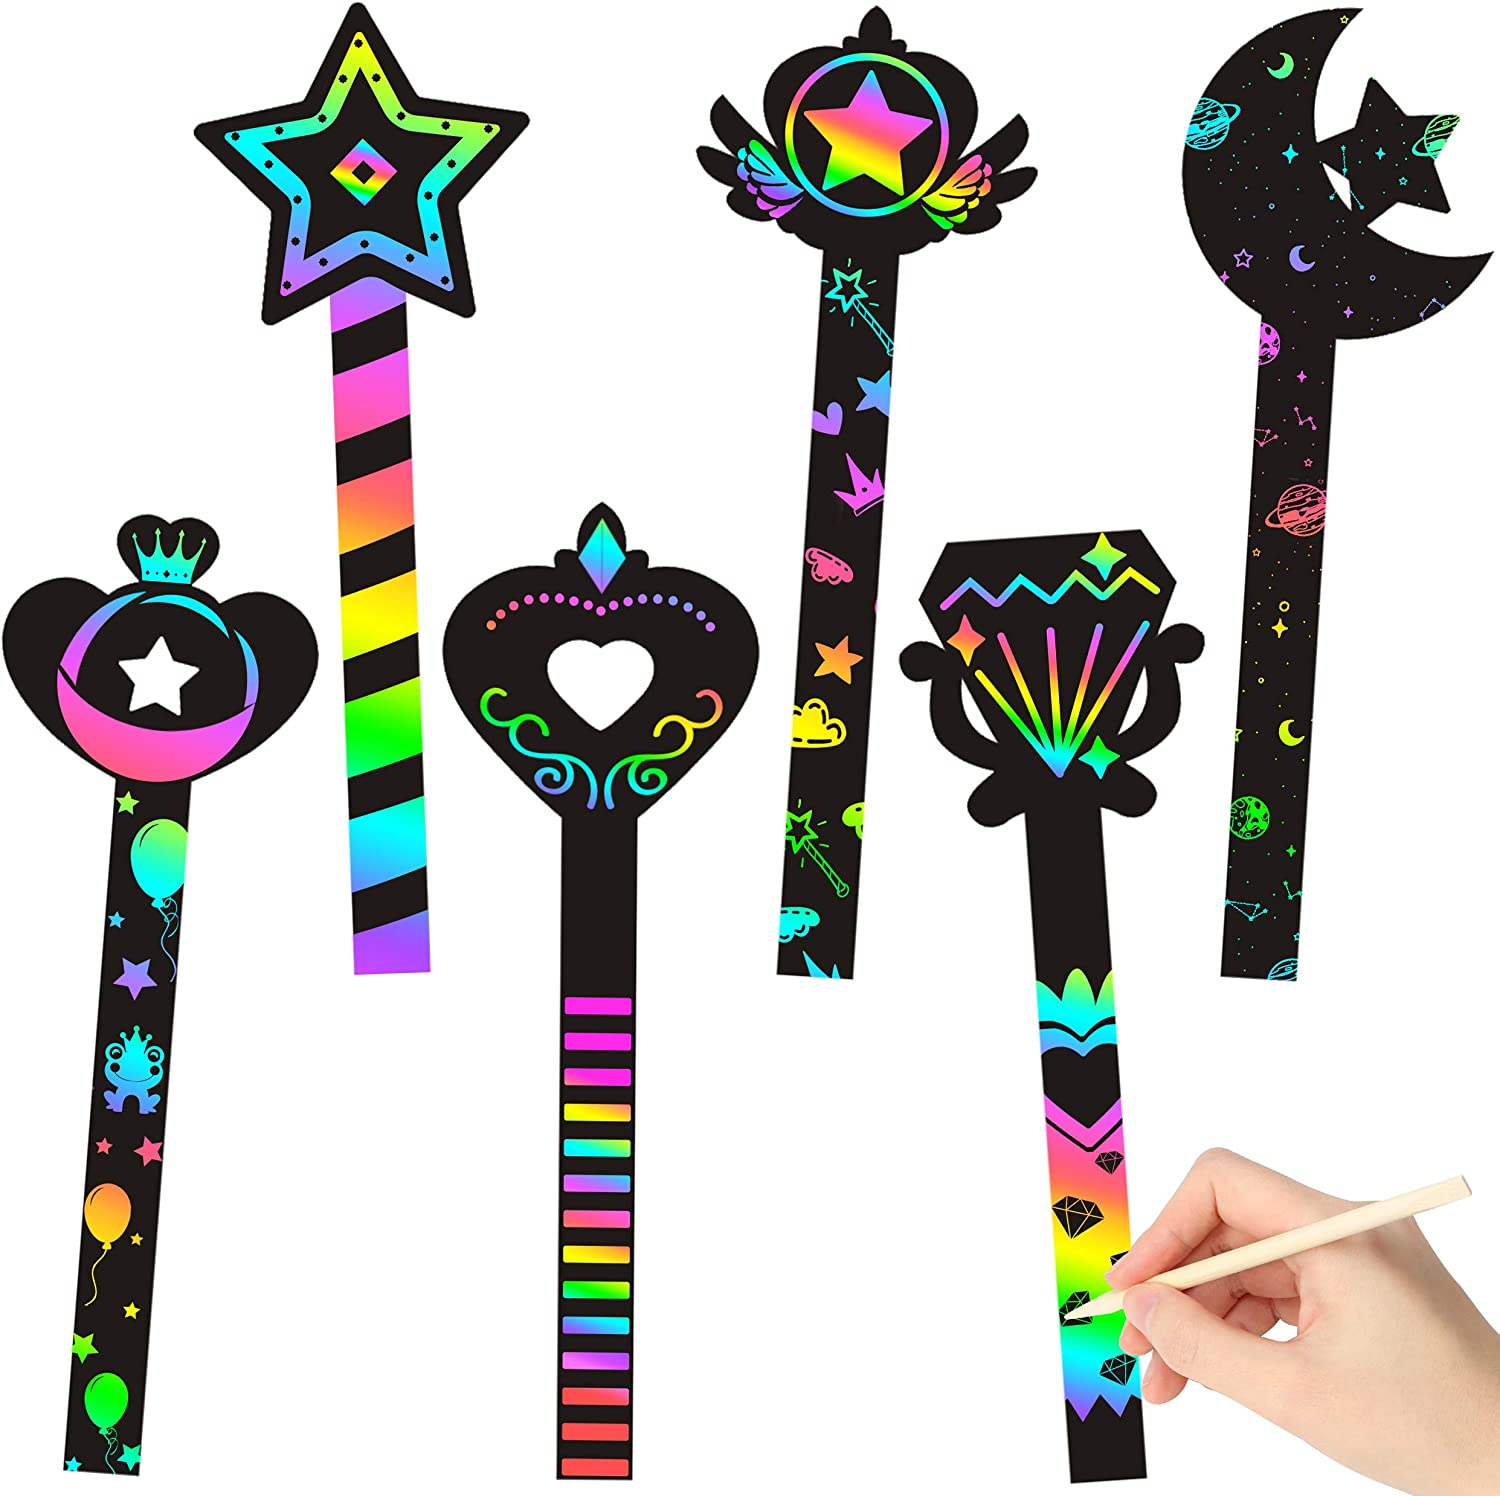 Fairy Wand Supplies Fun Home Activities Birthday Gifts for Kids WATINC 30Pcs Fairy Stick Scratch Paper Art Set for Girls Birthday Party Magic Rainbow Color DIY Craft Kit for Princess Party Favors